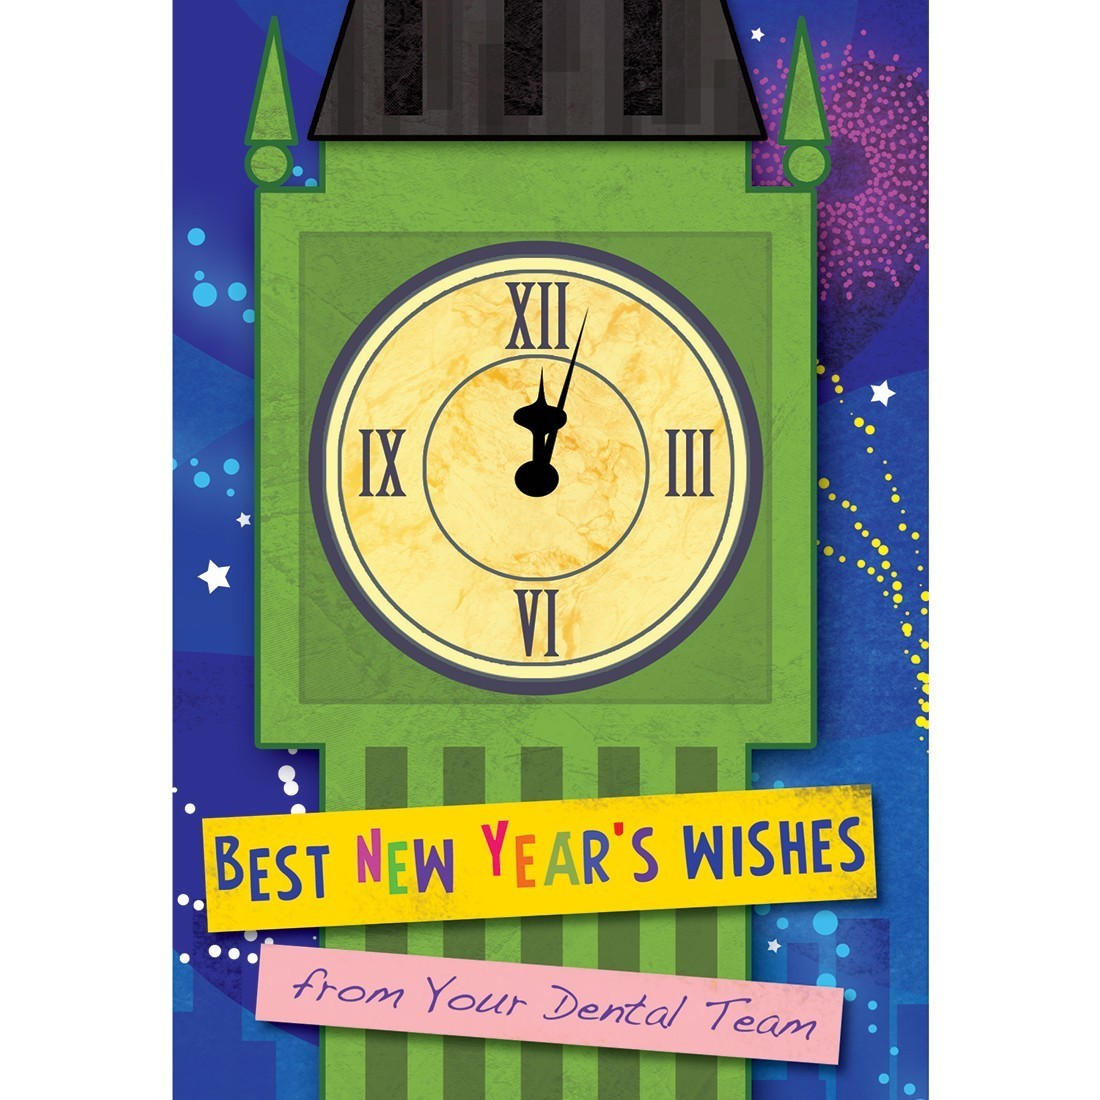 Best New Year Wishes Greeting Cards [image]